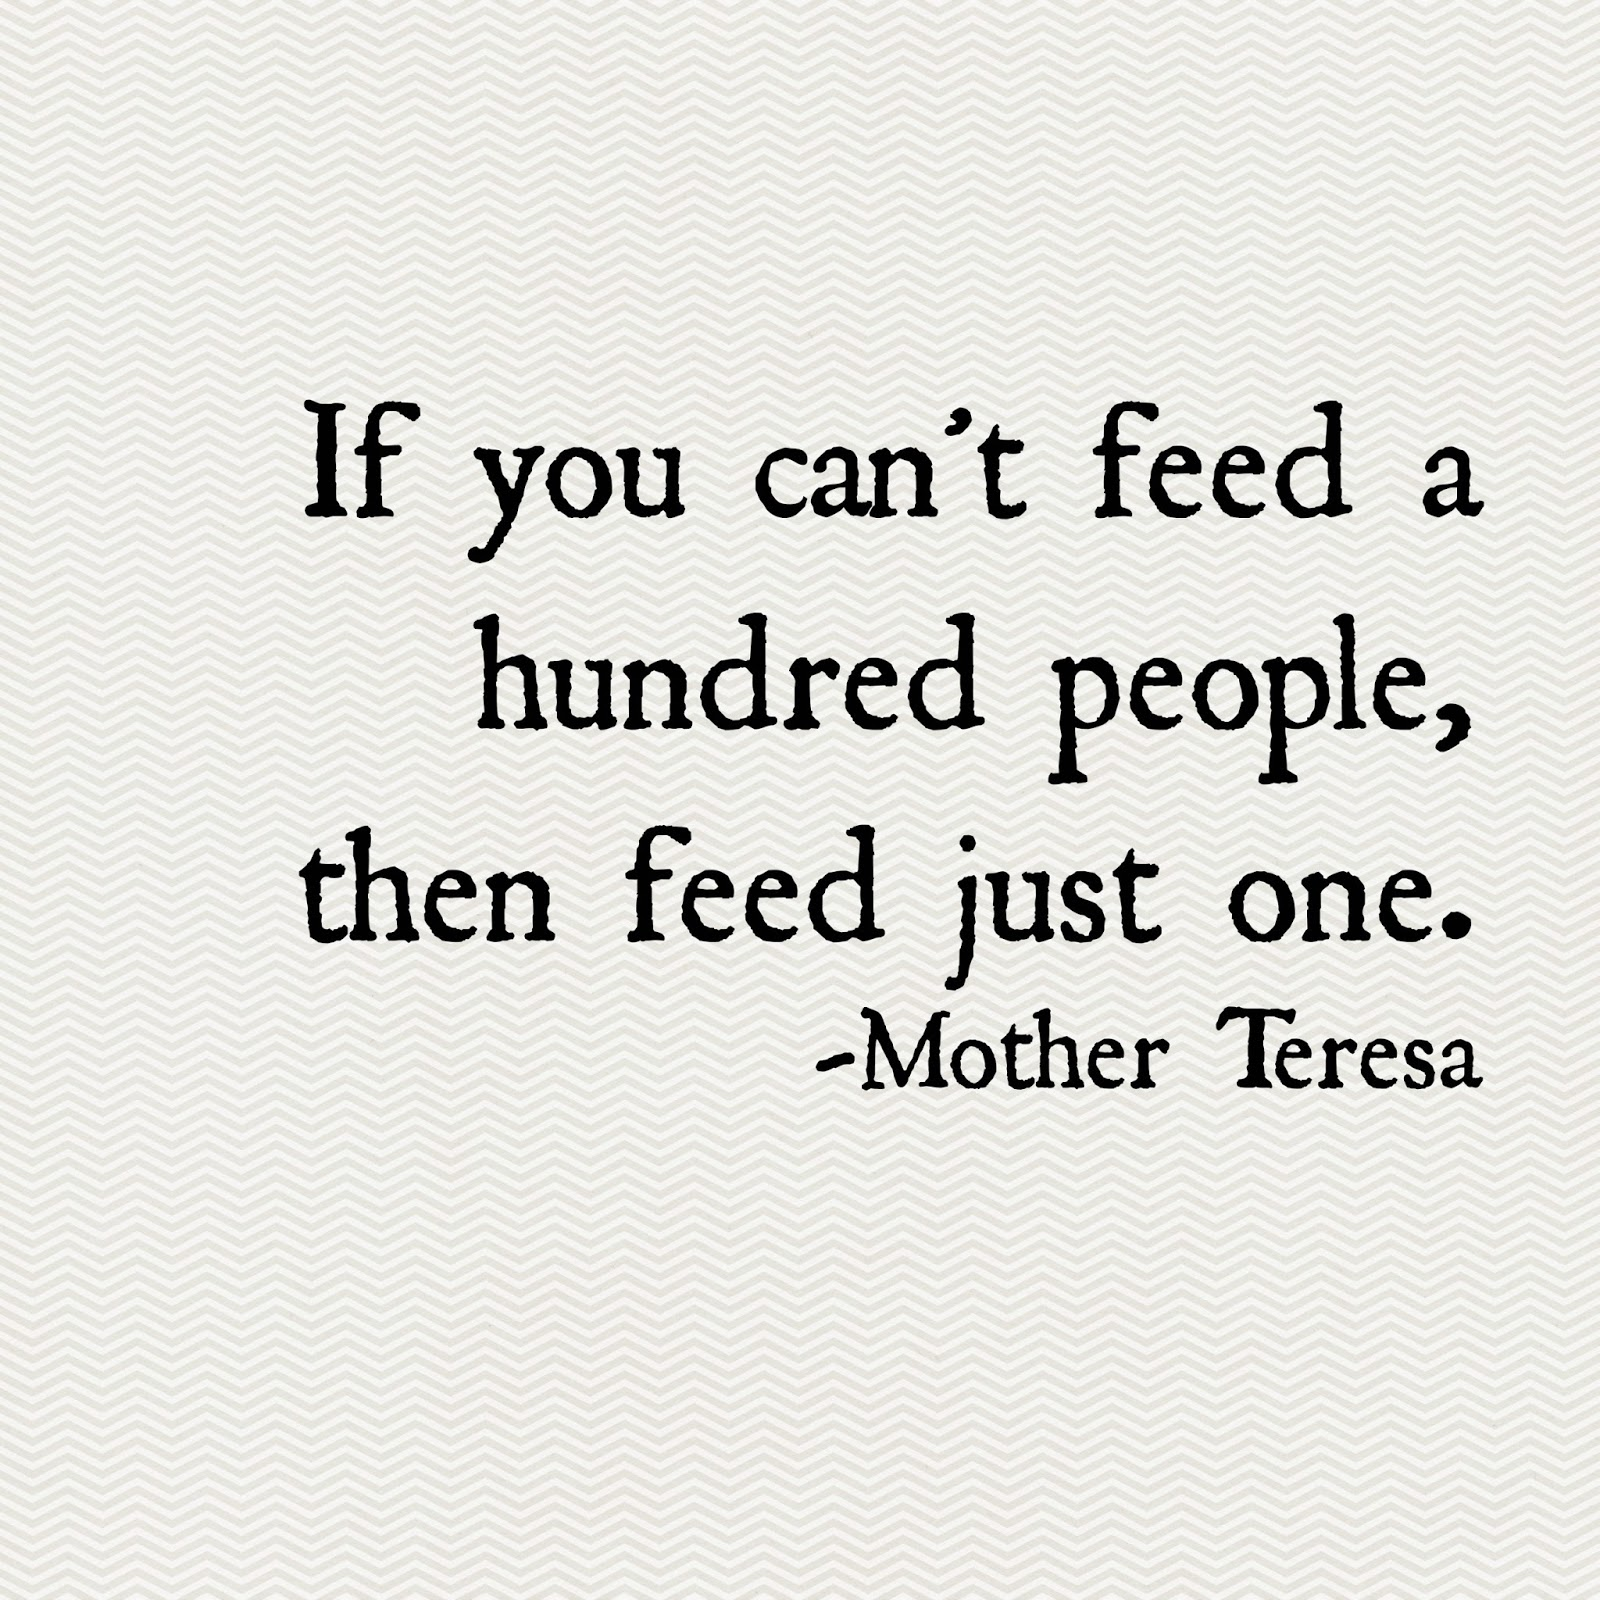 Feeding The Homeless Quotes Feeding The Homeless Quotes Beauteous Feeding The Homeless Quotes